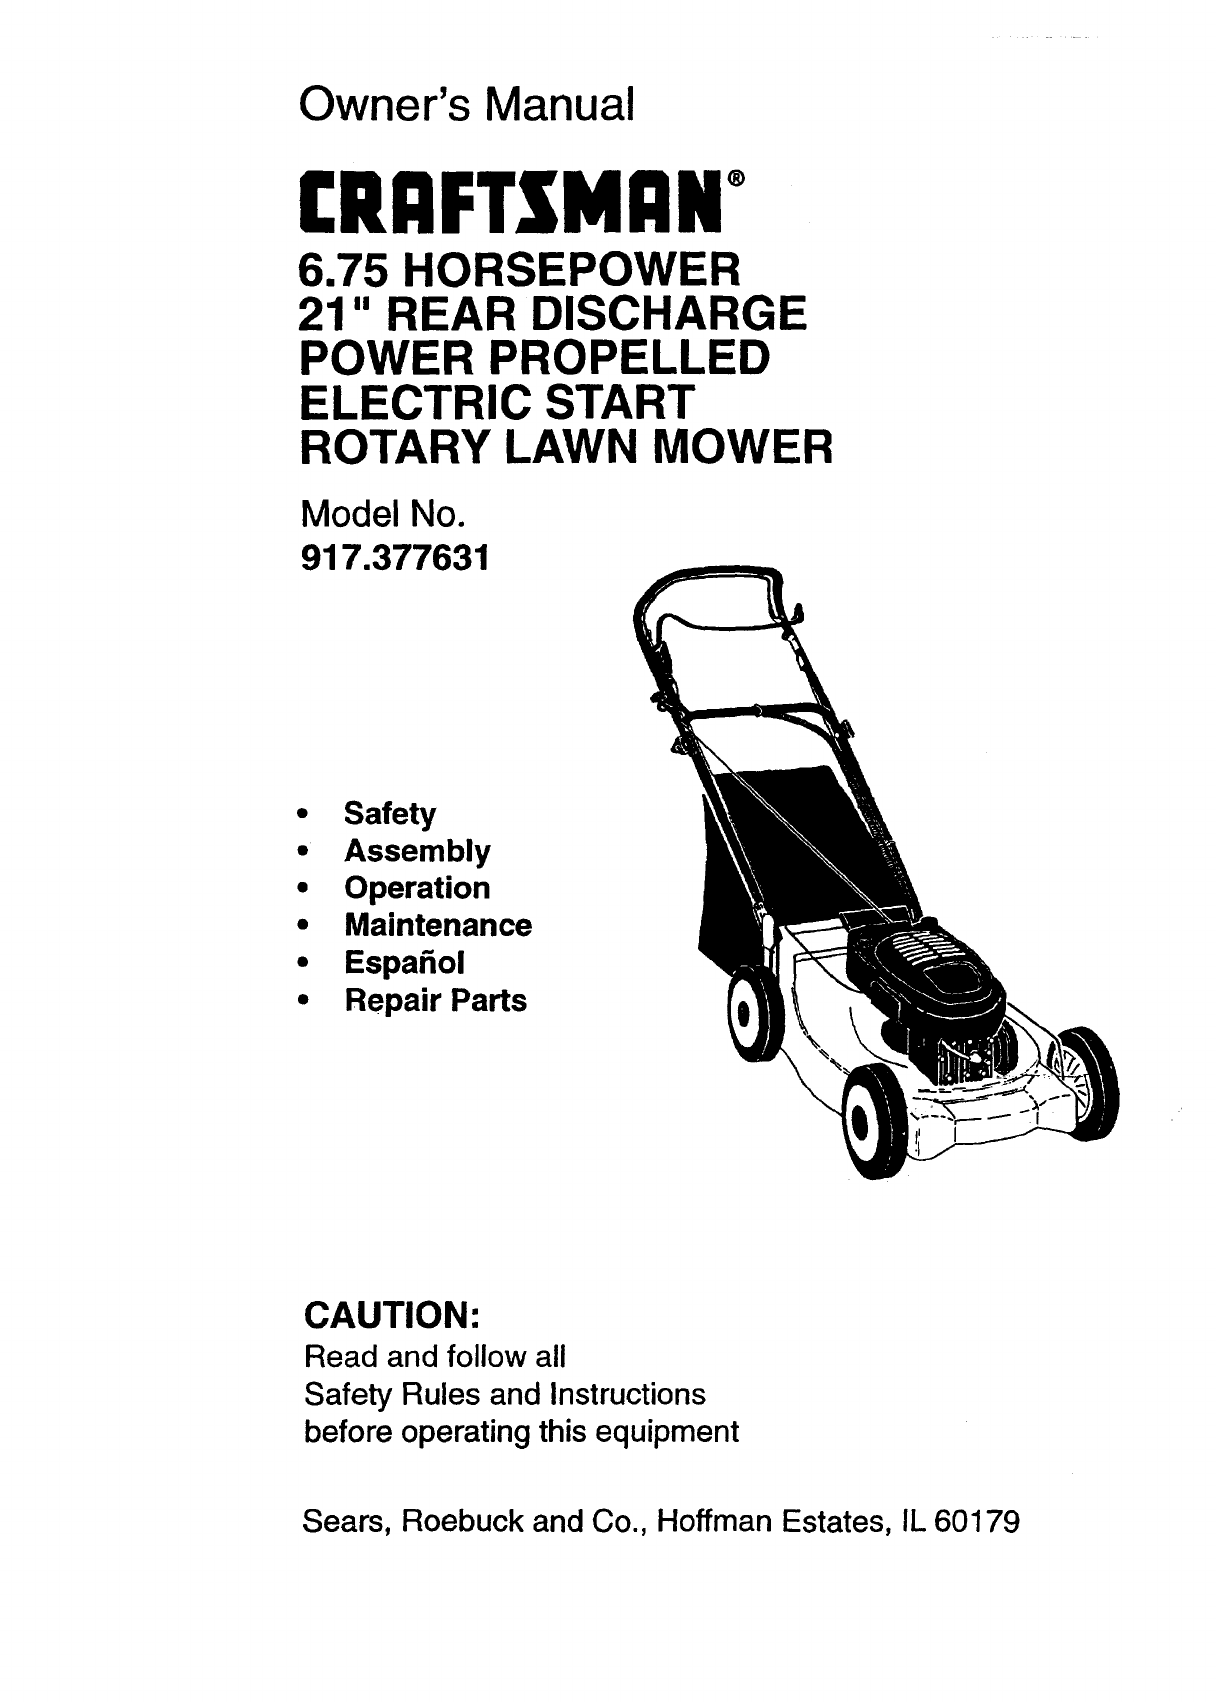 craftsman lawn mower 37763 user guide manualsonline com rh manualsonline com craftsman electric start lawn mower parts craftsman key start lawn mower parts